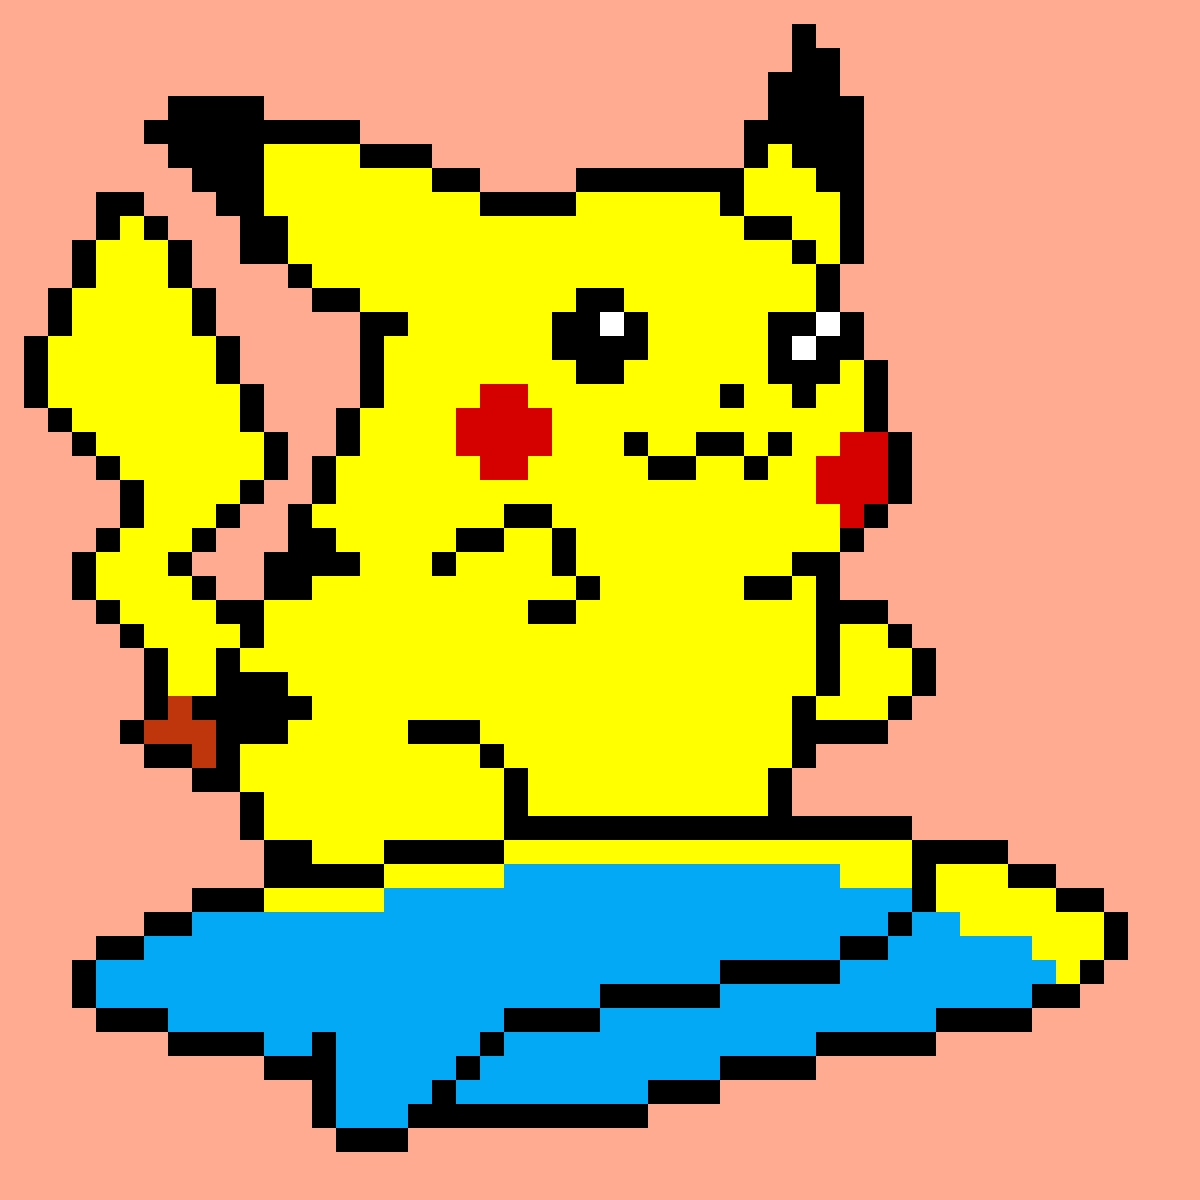 surfing Pikachu by Moonqueen